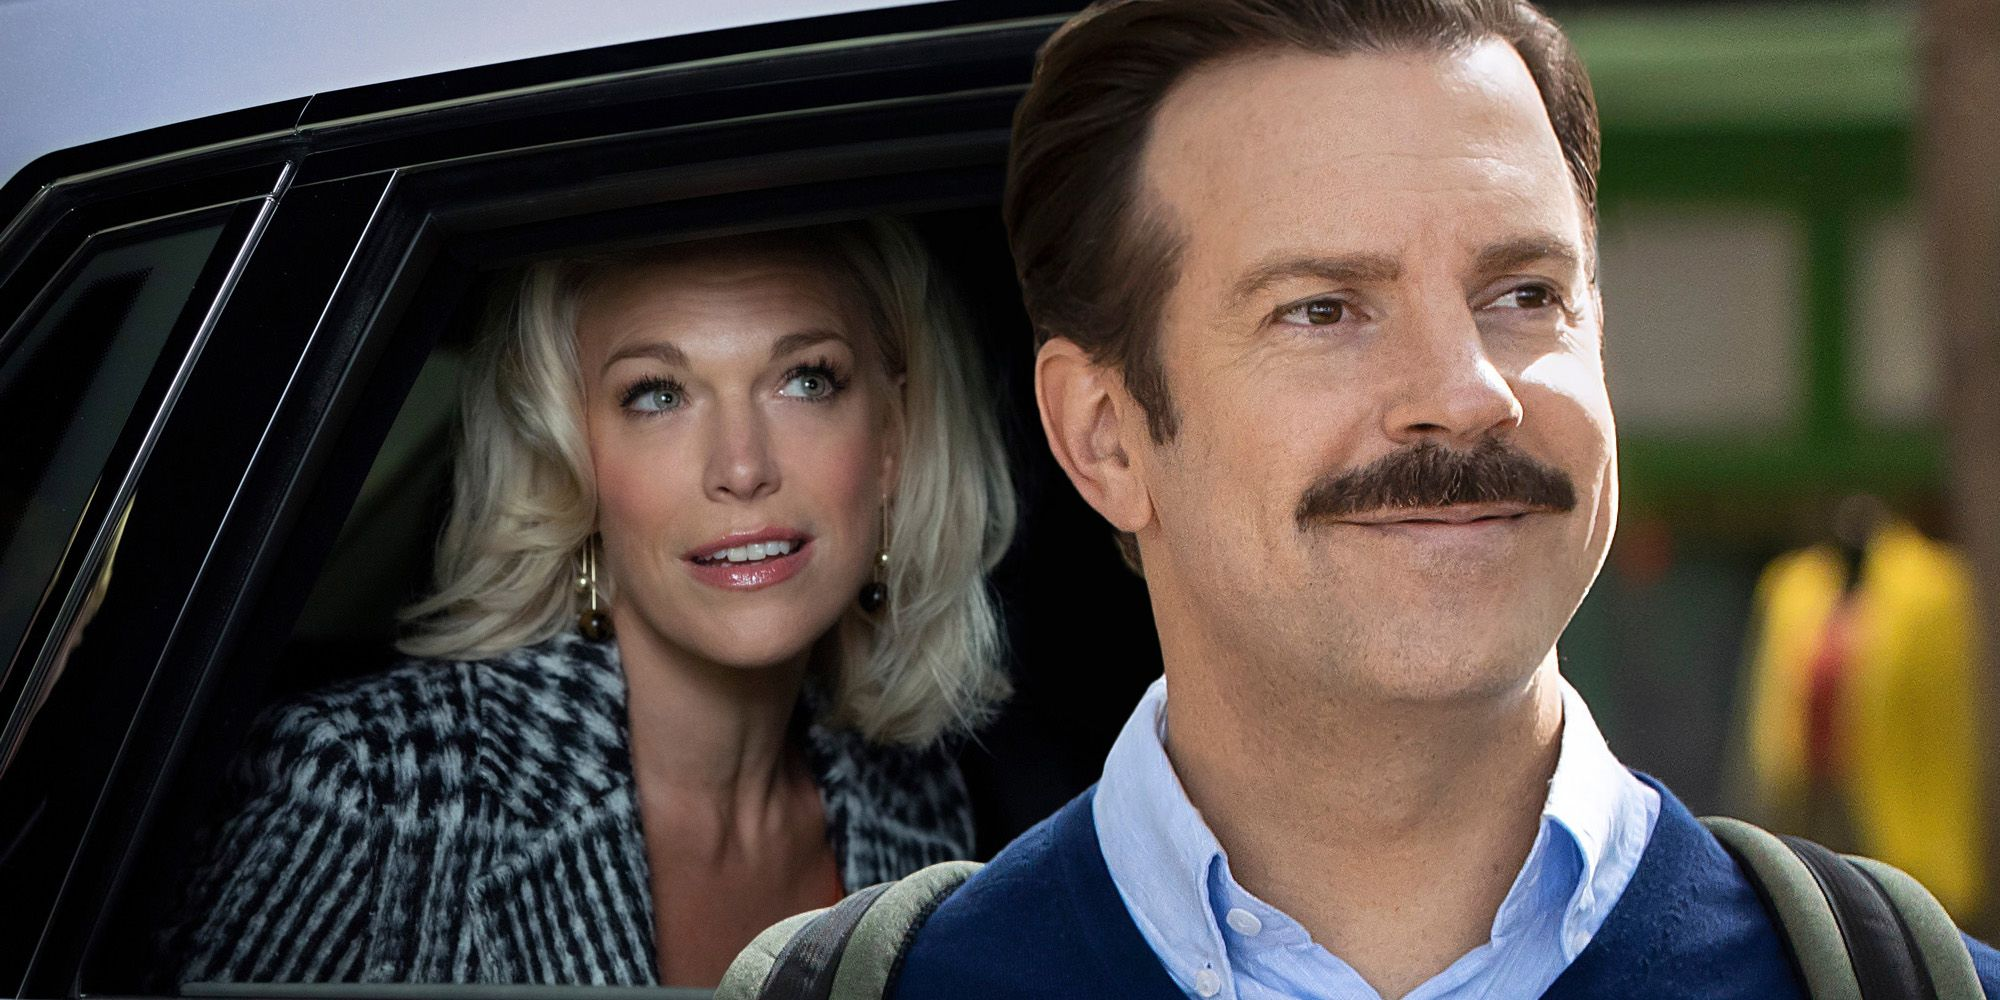 Ted Lasso Season 2 Update: Release Date & Story Details